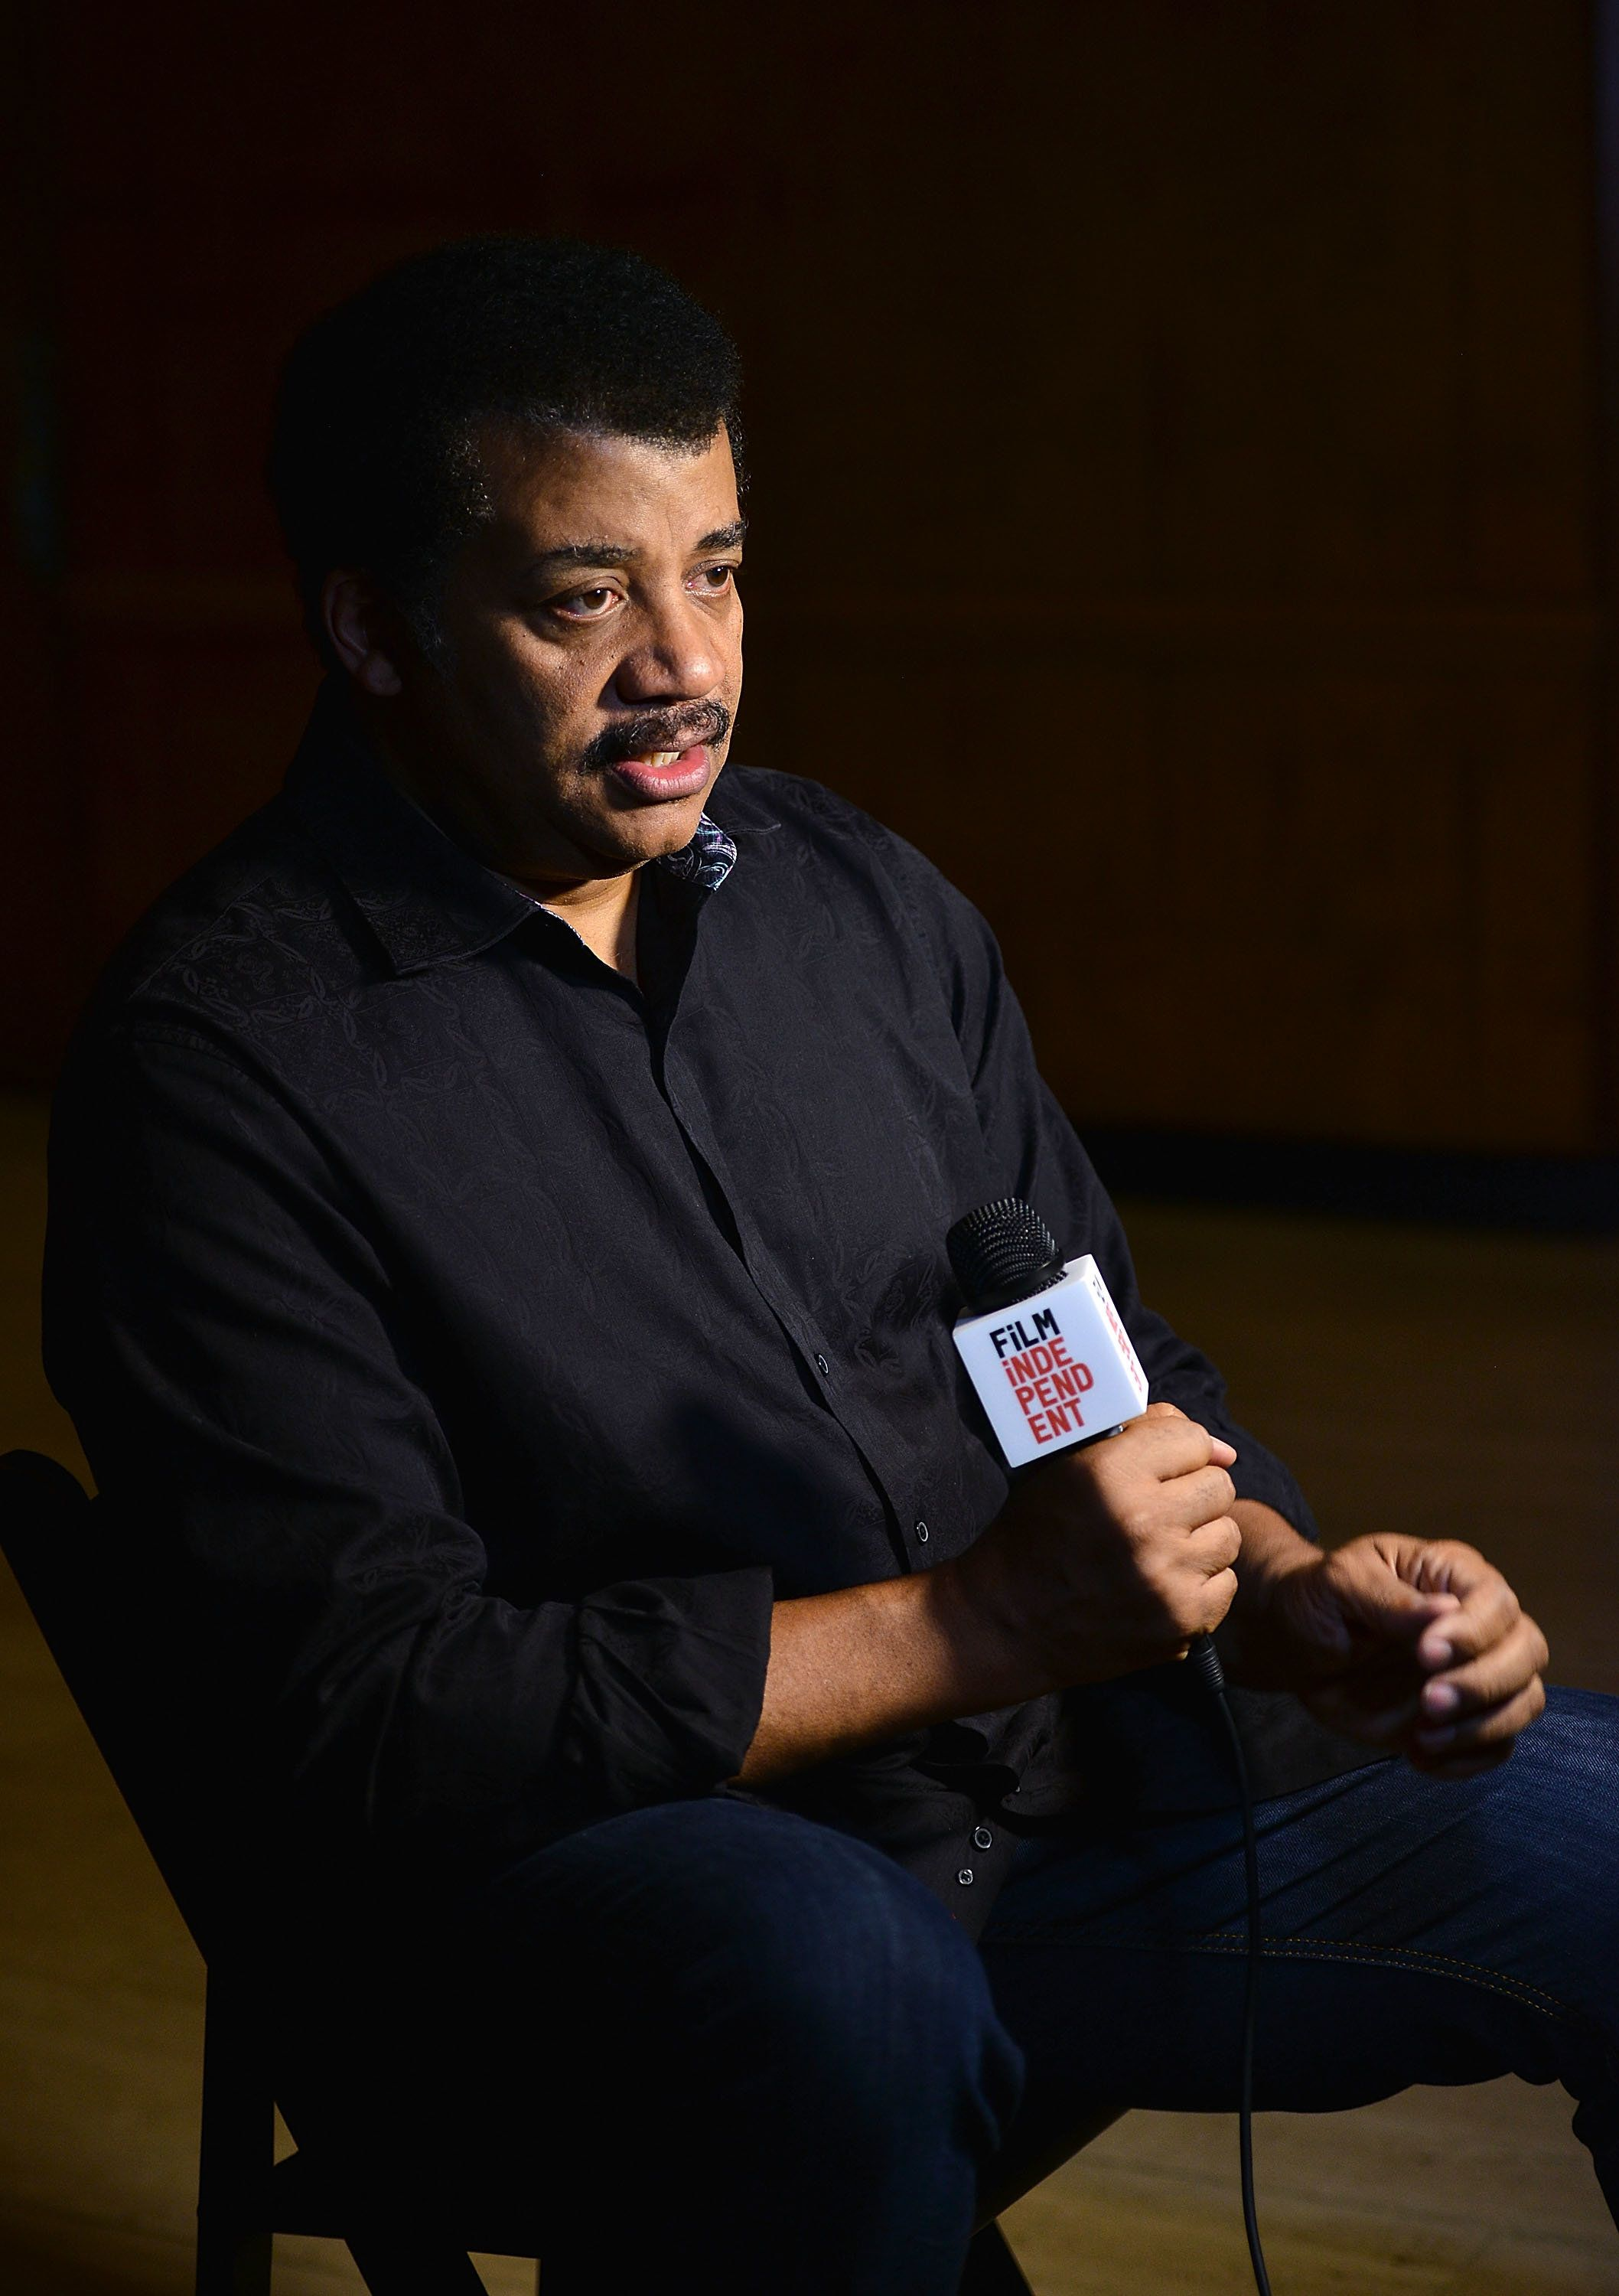 LOS ANGELES, CA - JUNE 05:  Neil deGrasse Tyson attends Film Independent at LACMA presents StarTalk - A Conversation with Astrophysicist Neil deGrasse Tyson at Bing Theater At LACMA on June 5, 2018 in Los Angeles, California.  (Photo by Araya Diaz/Getty Images)